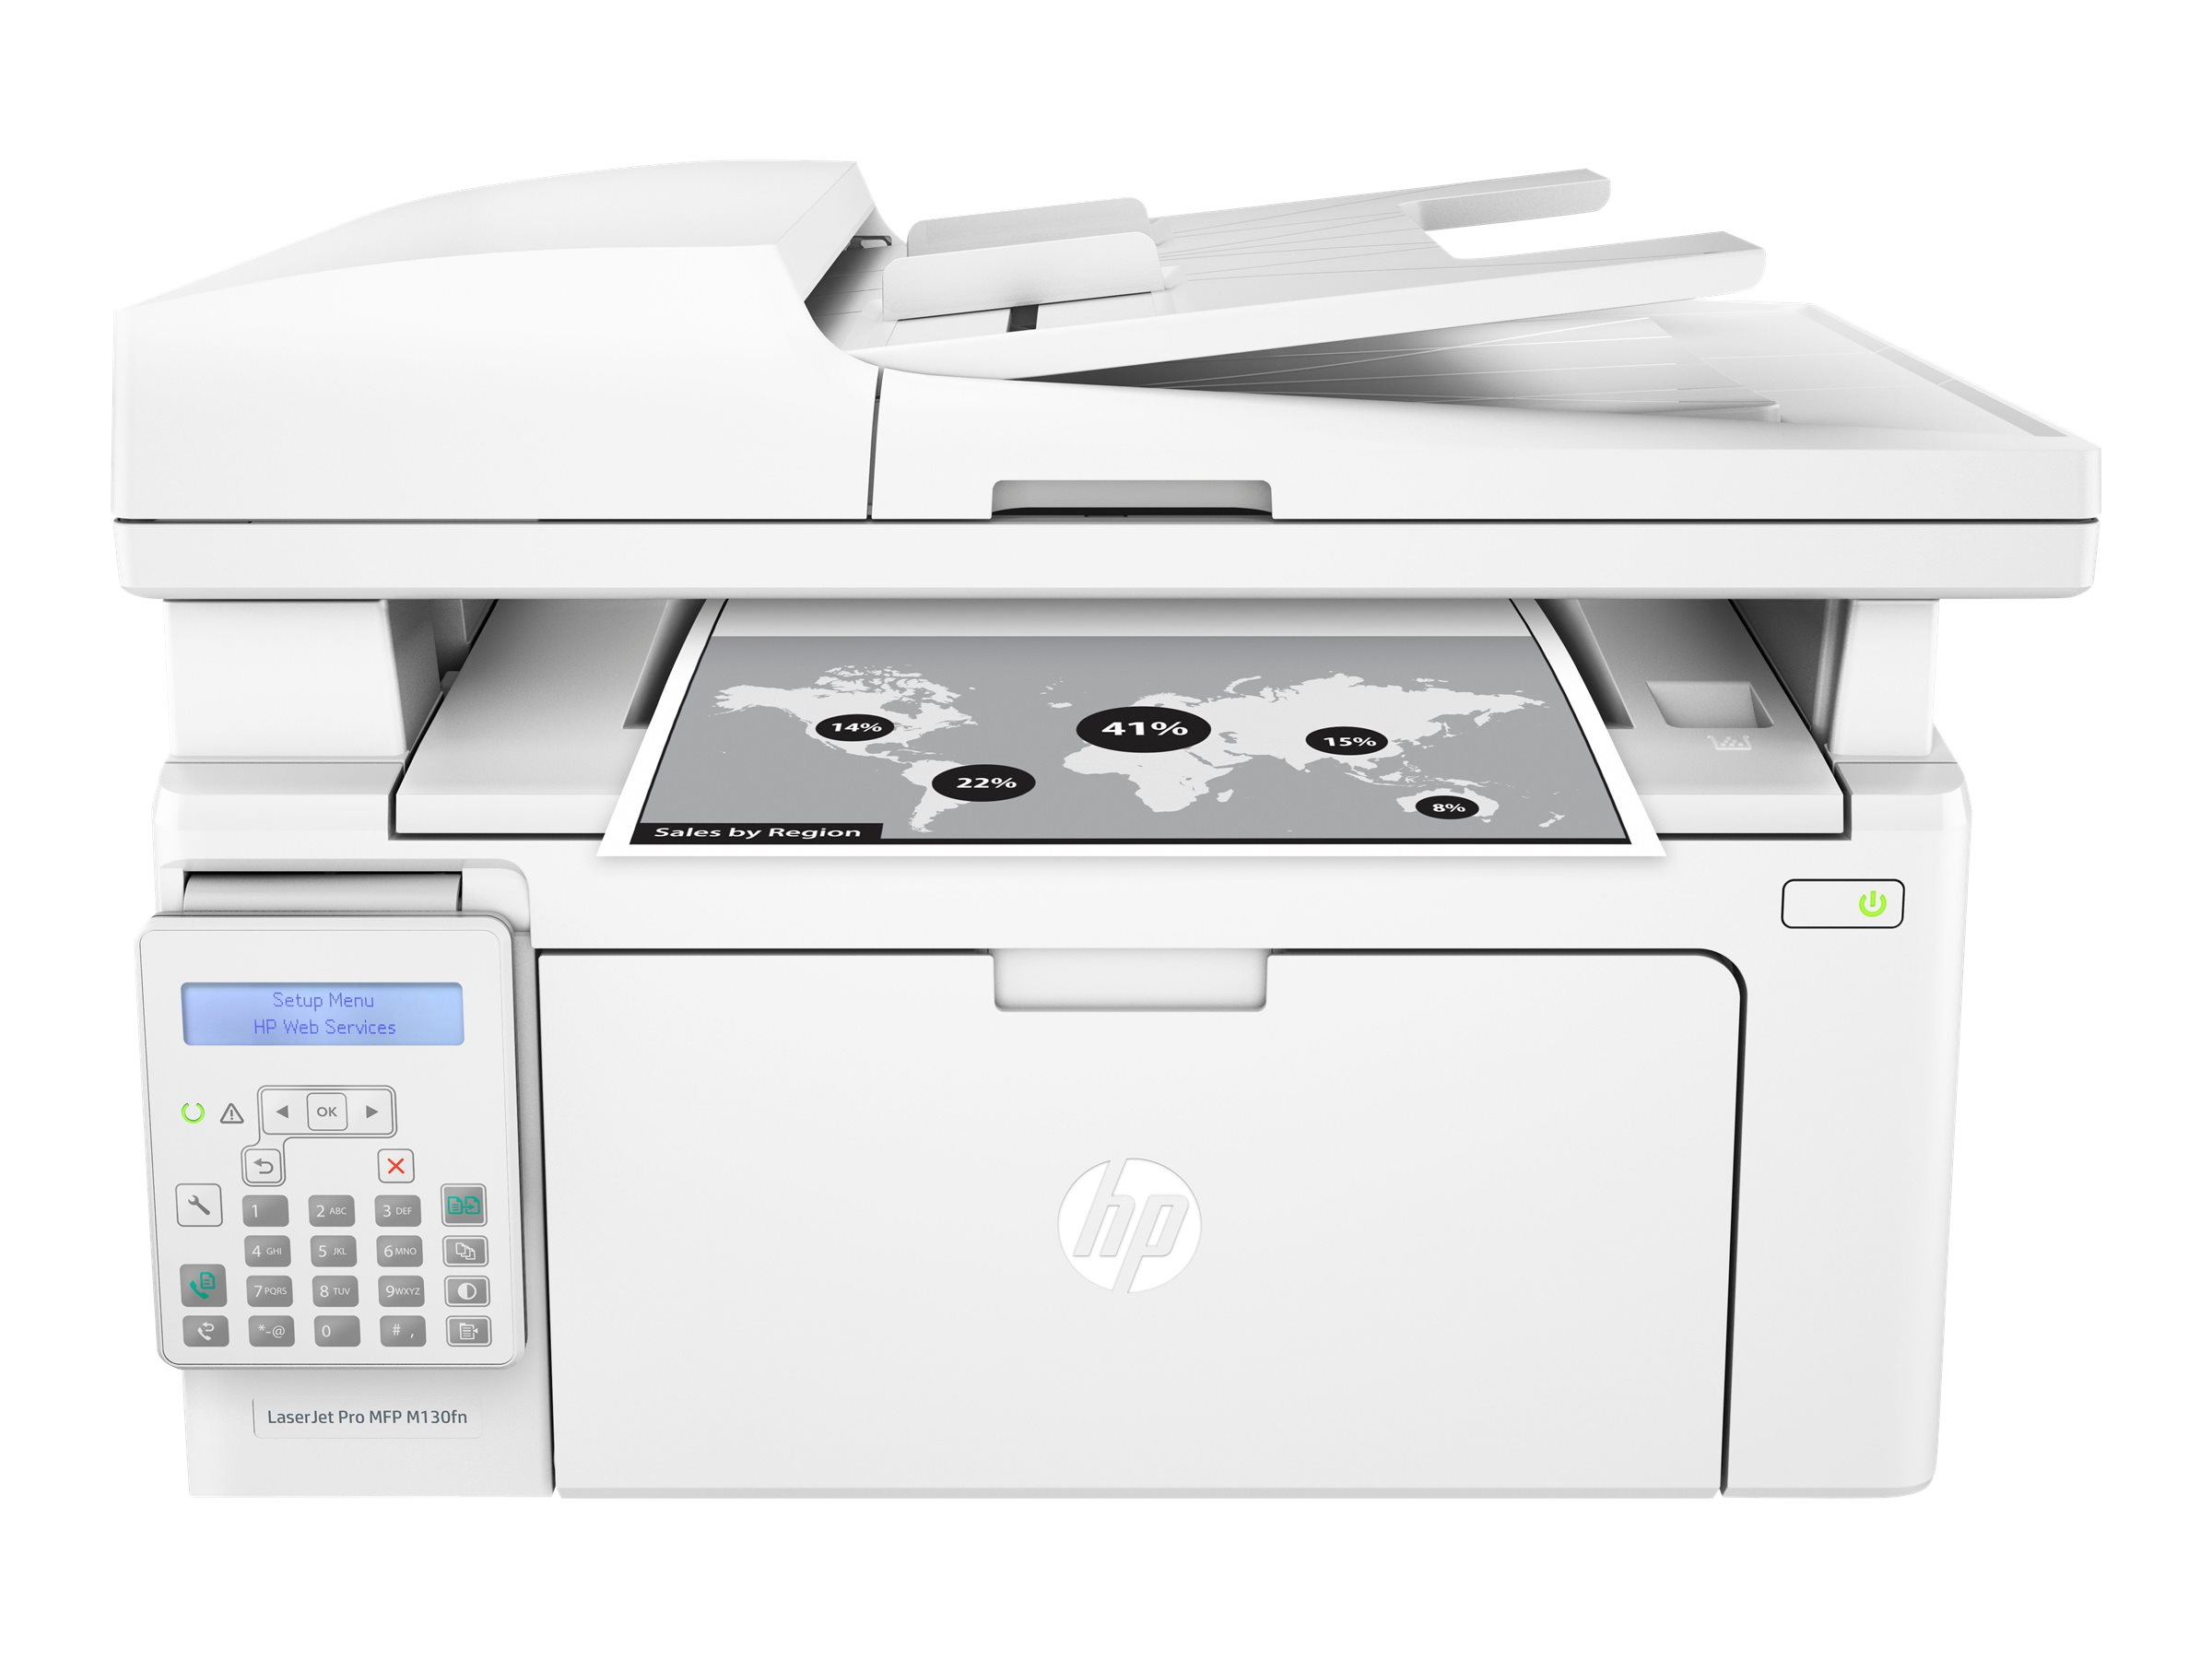 Image for Hp Laserjet Pro Mfp M130Fn - Multifunction Printer (B/W) from Circuit City